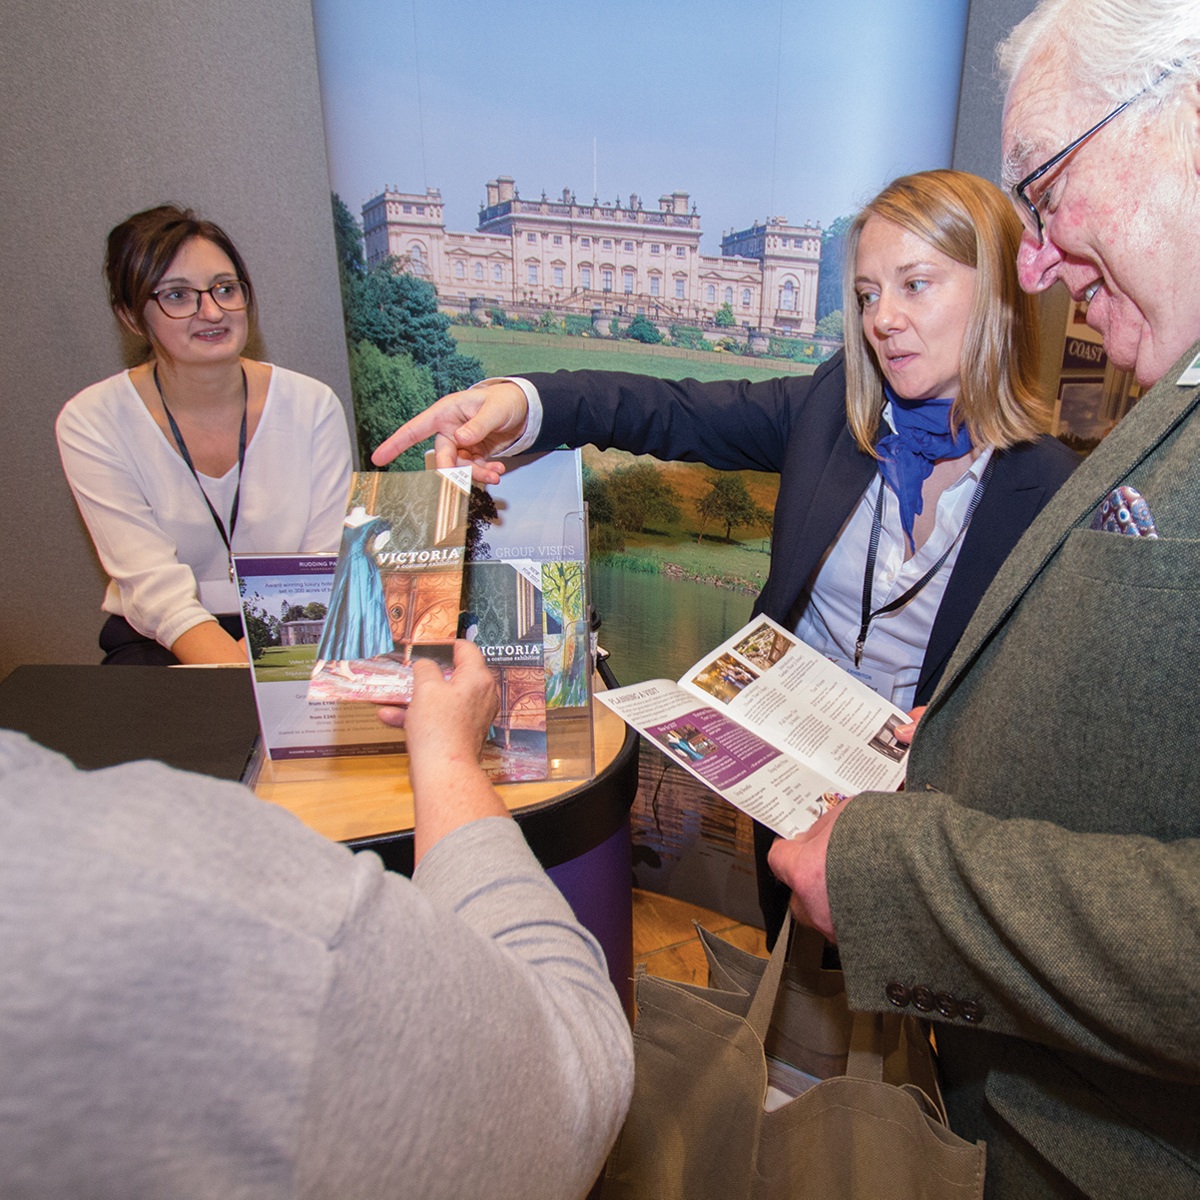 GTOs talking to exhibitors at our show in Leeds